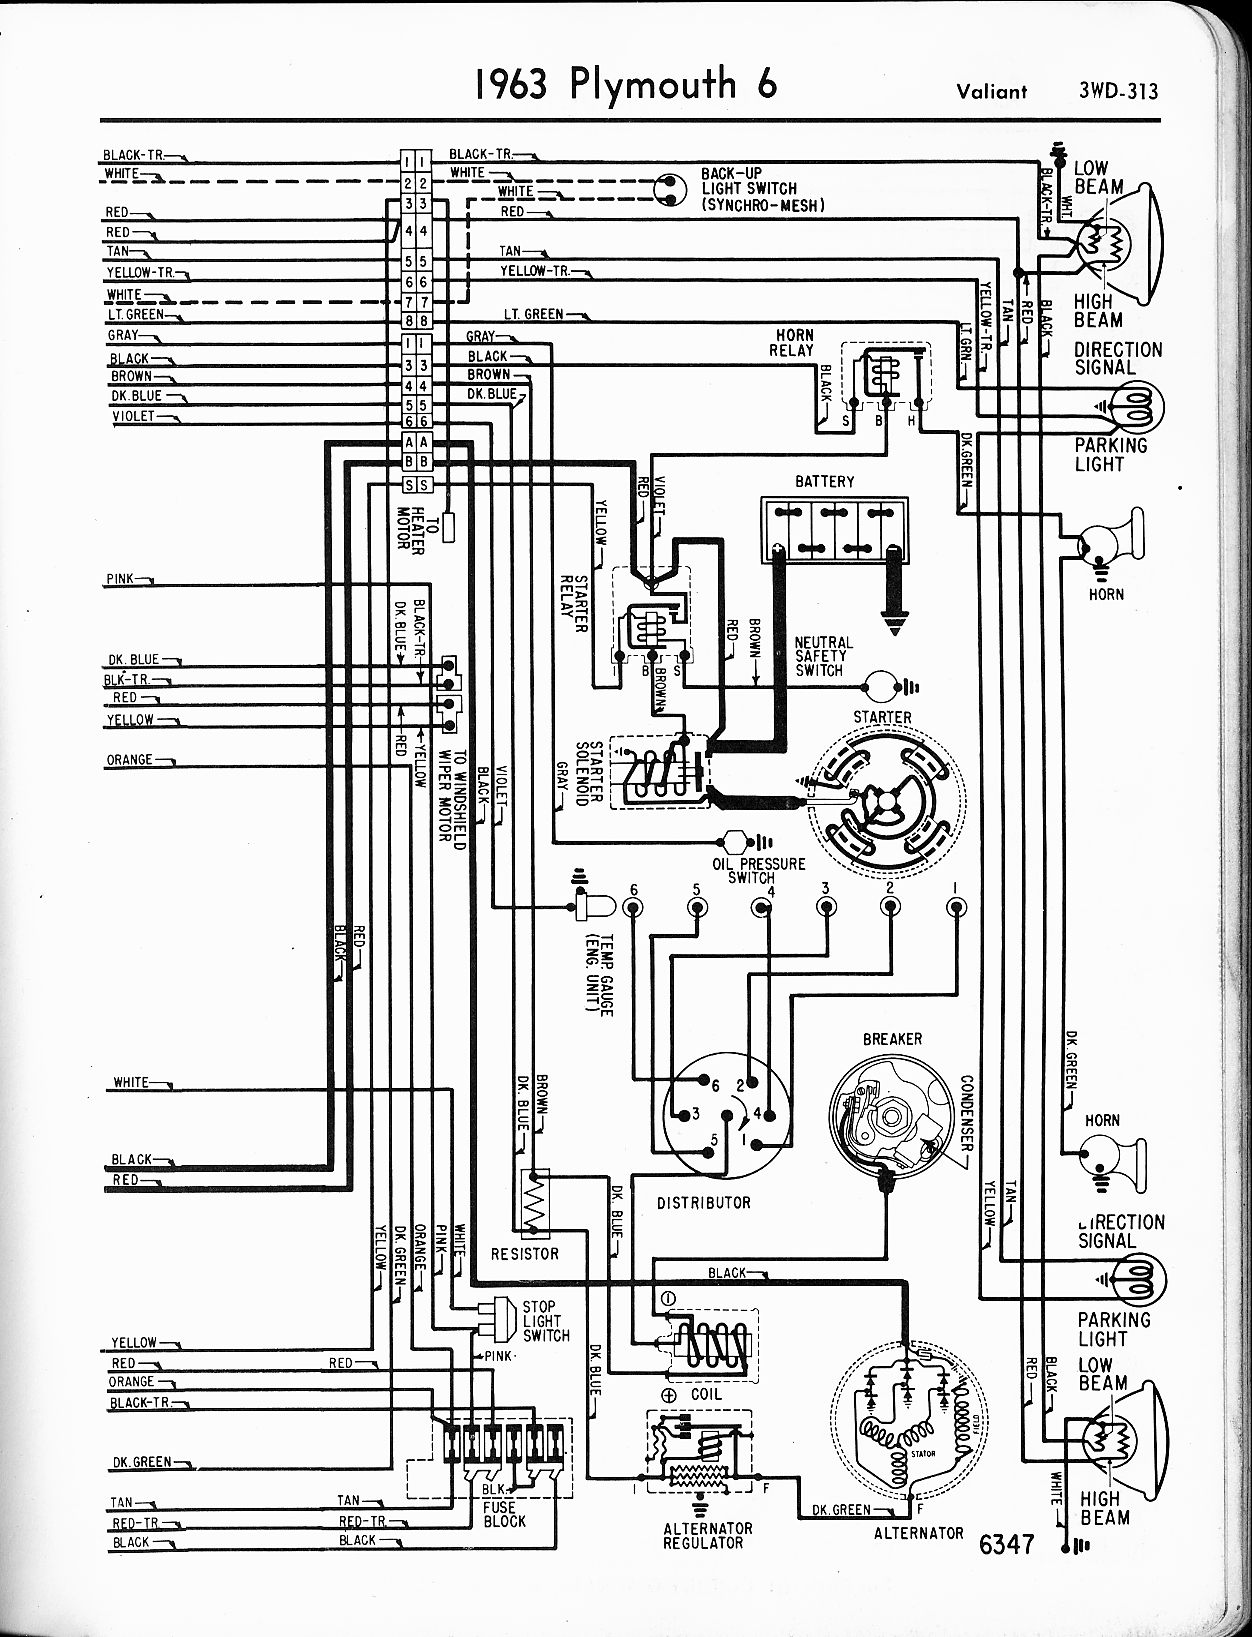 MWire5765 313 1956 1965 plymouth wiring the old car manual project Mopar Ignition Switch Wiring Diagram at eliteediting.co